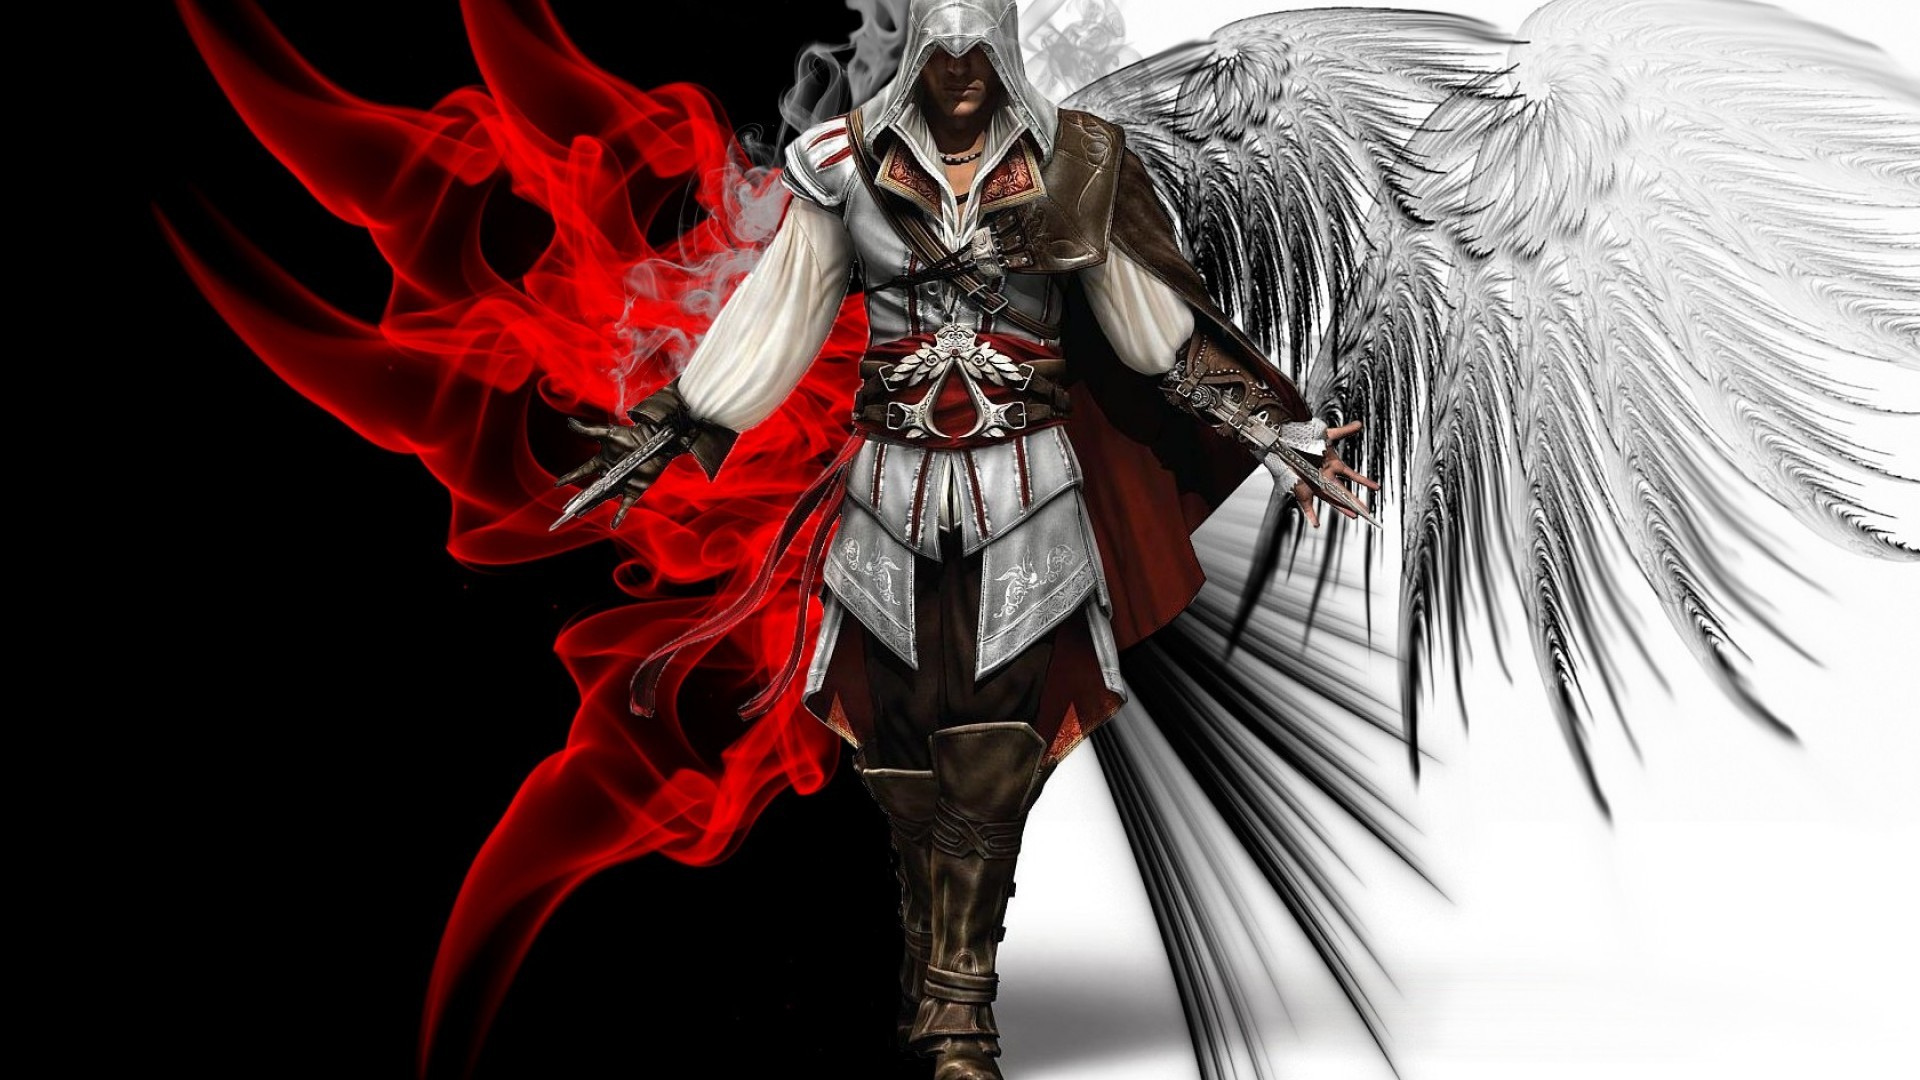 Cool Assassins Creed Wallpapers (74+ Images